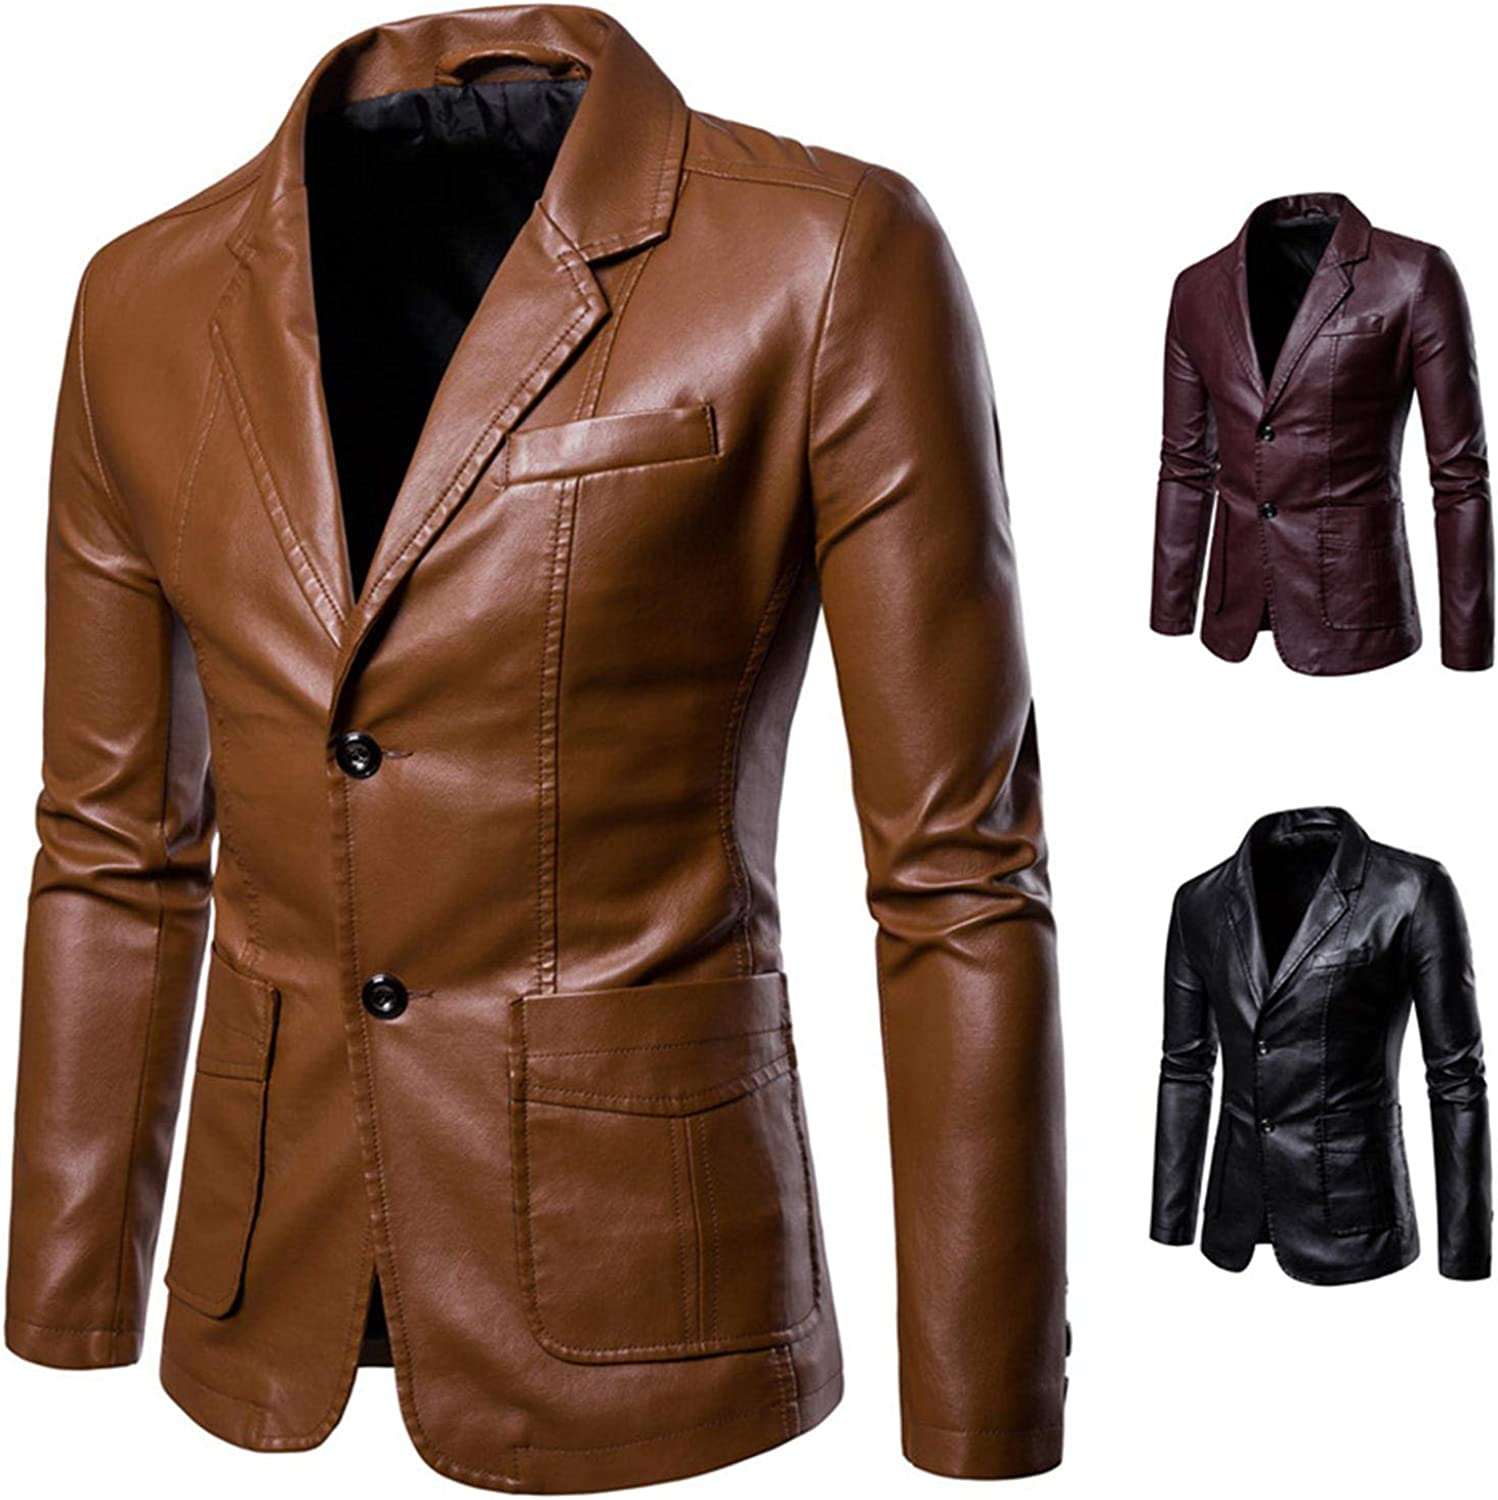 Soluo Leather Blazers for Men - Mens Real Lambskin Leather Jackets & Sport Coats Outerwear Overcoat (Red Wine,X-Large)